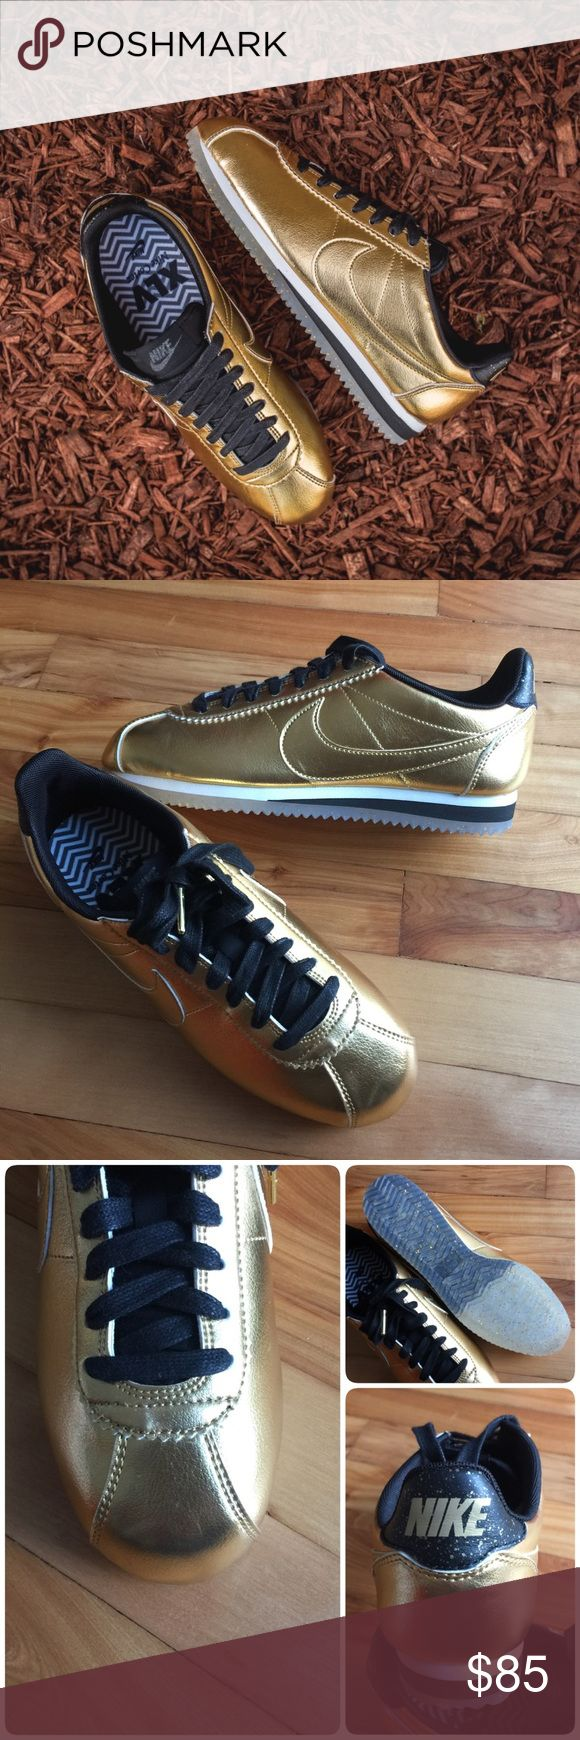 🇺🇸New🇺🇸 NIKE Classic Cortez Leather SE ~ 7.5 brand new no lid size 7.5 metallic gold comes from smoke free home guaranteed 100% authentic J1700043 Nike Shoes Sneakers